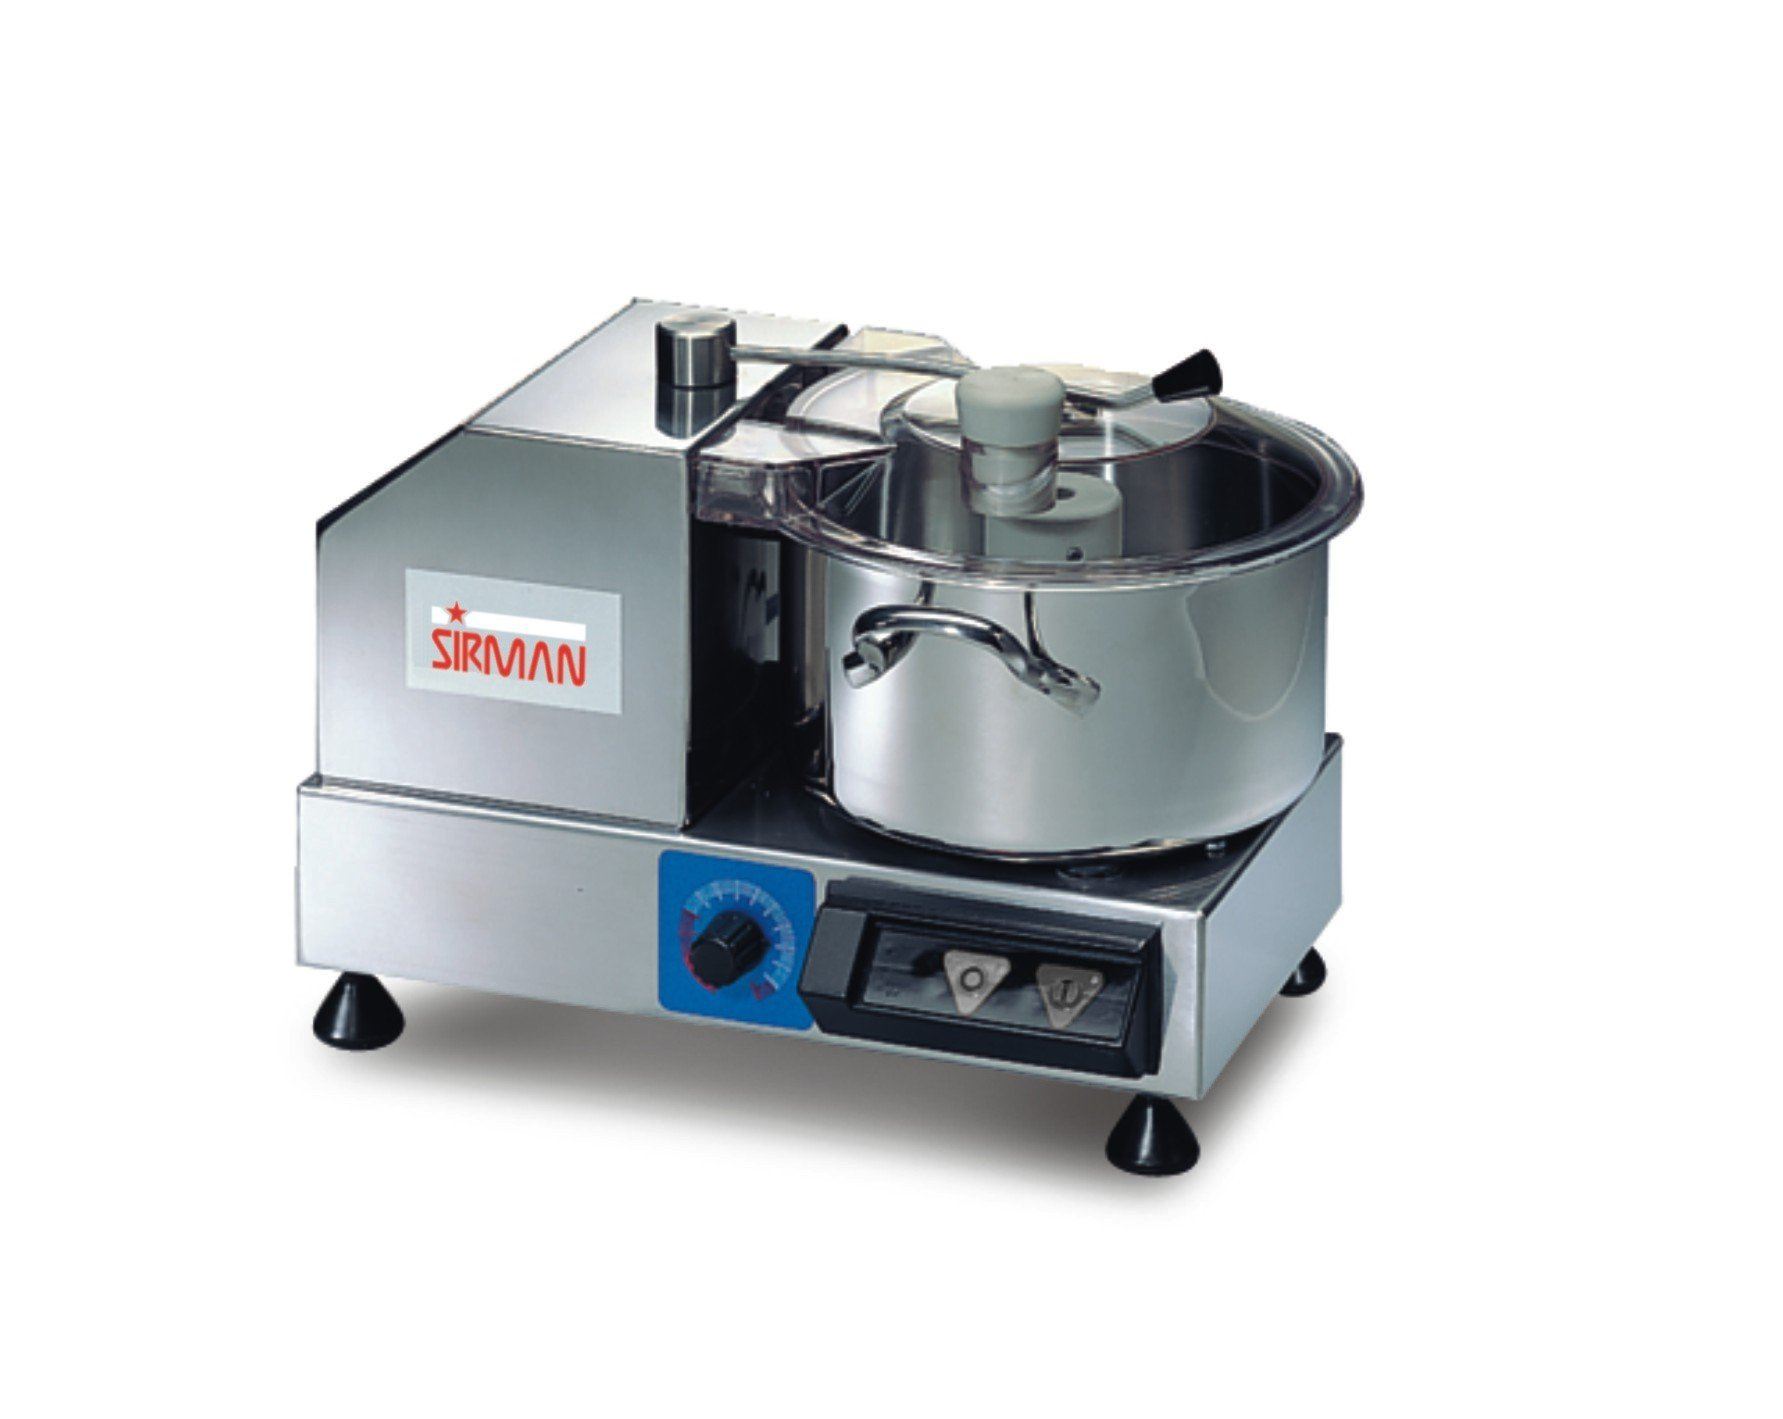 Sirman C4VV Stainless Steel Cutter